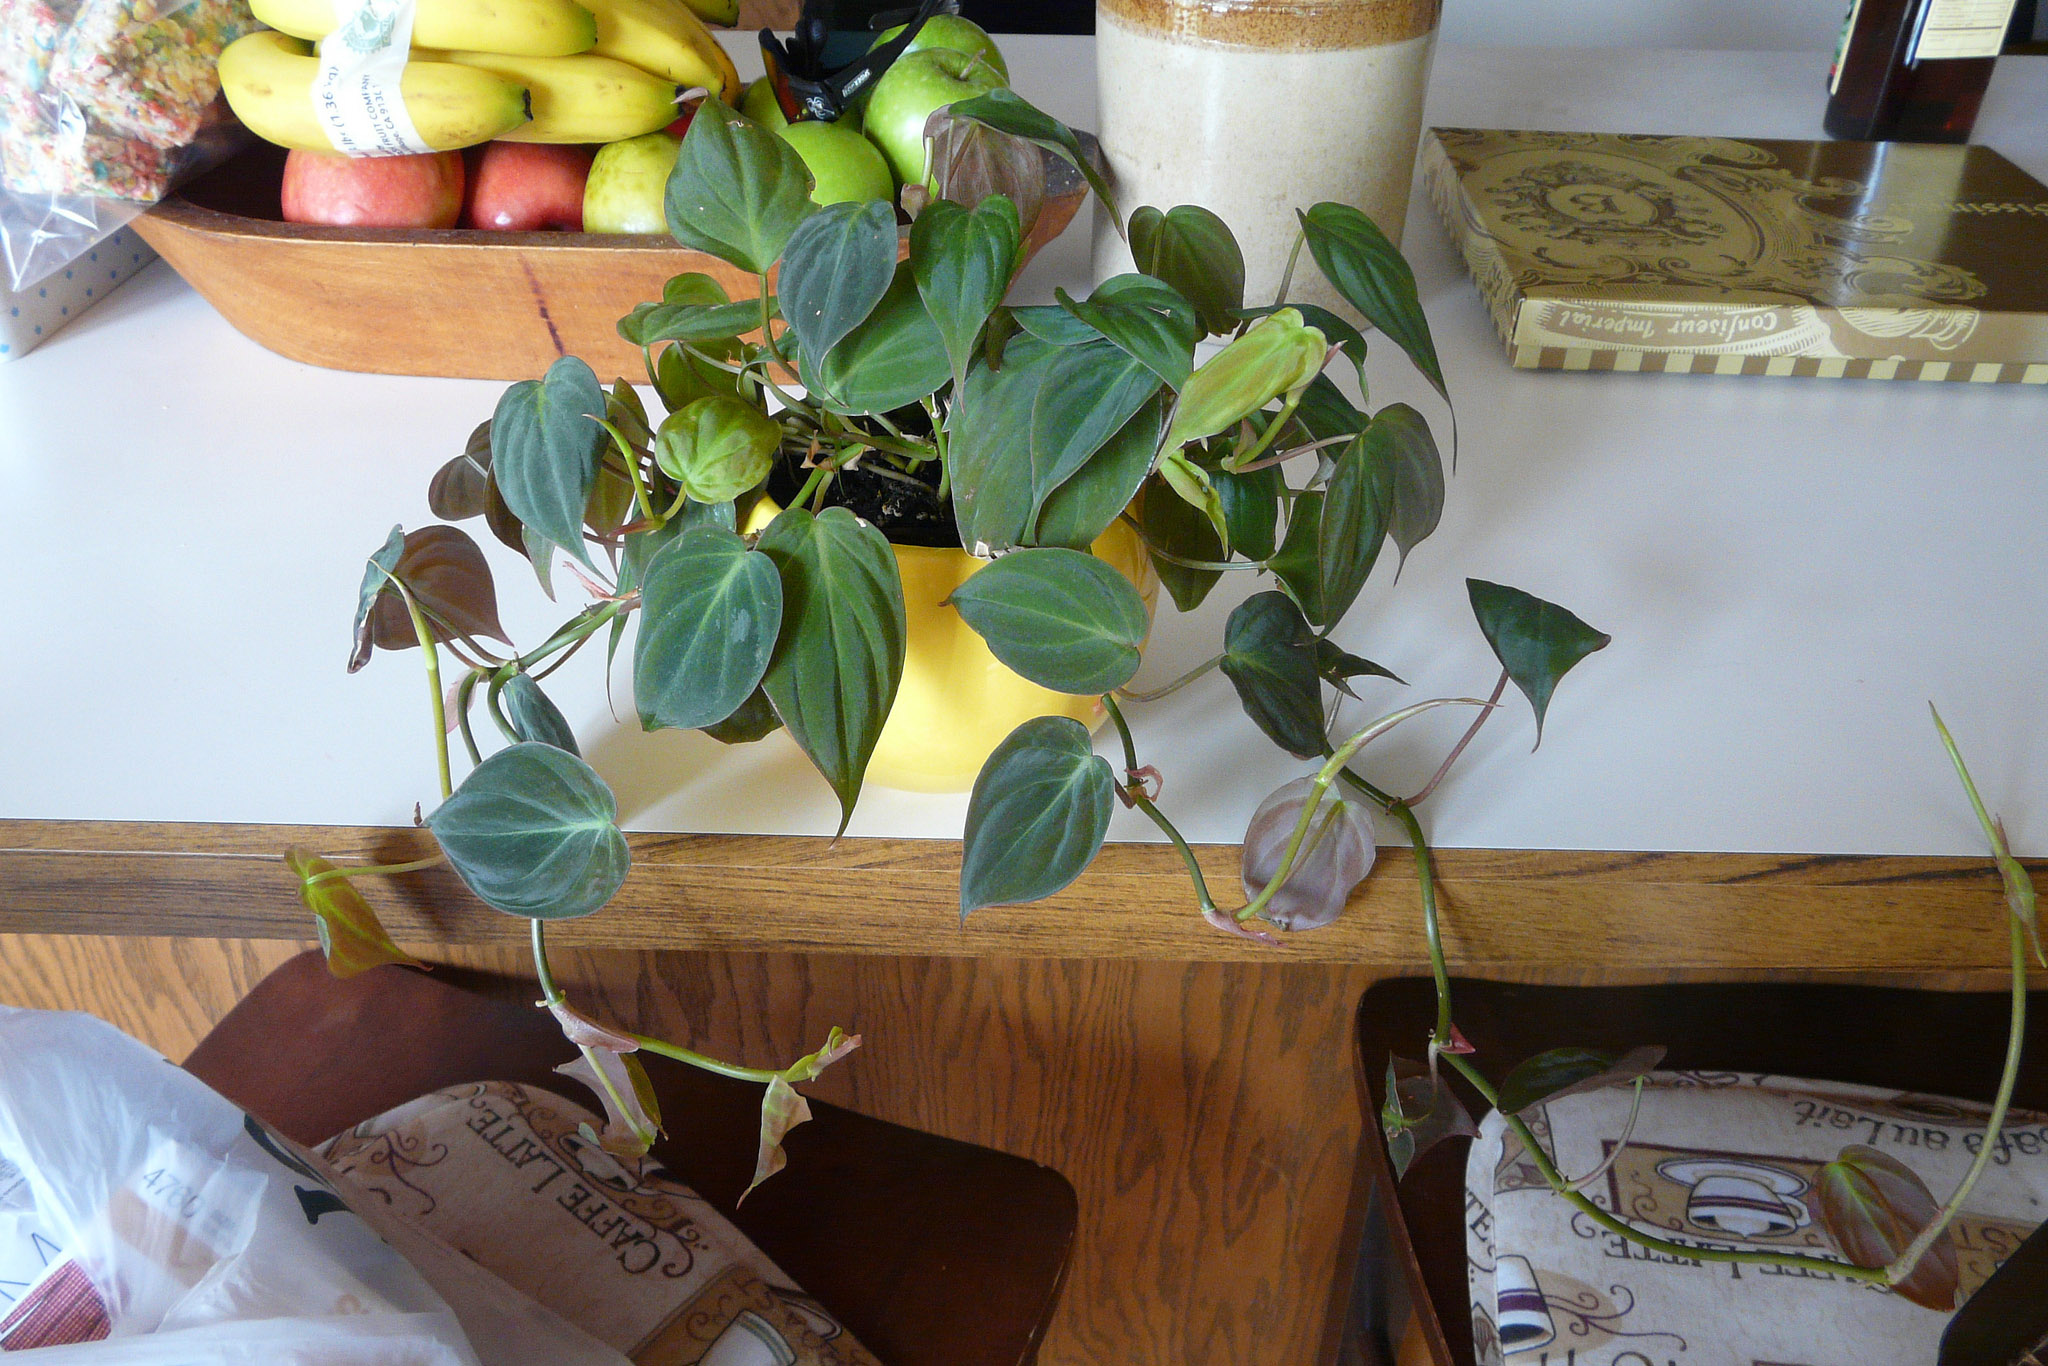 a Philodendron plant in a yellow pot on a white table. Behind it is a bowl of fruit, a canister, and what appears to be a box of chocolate.